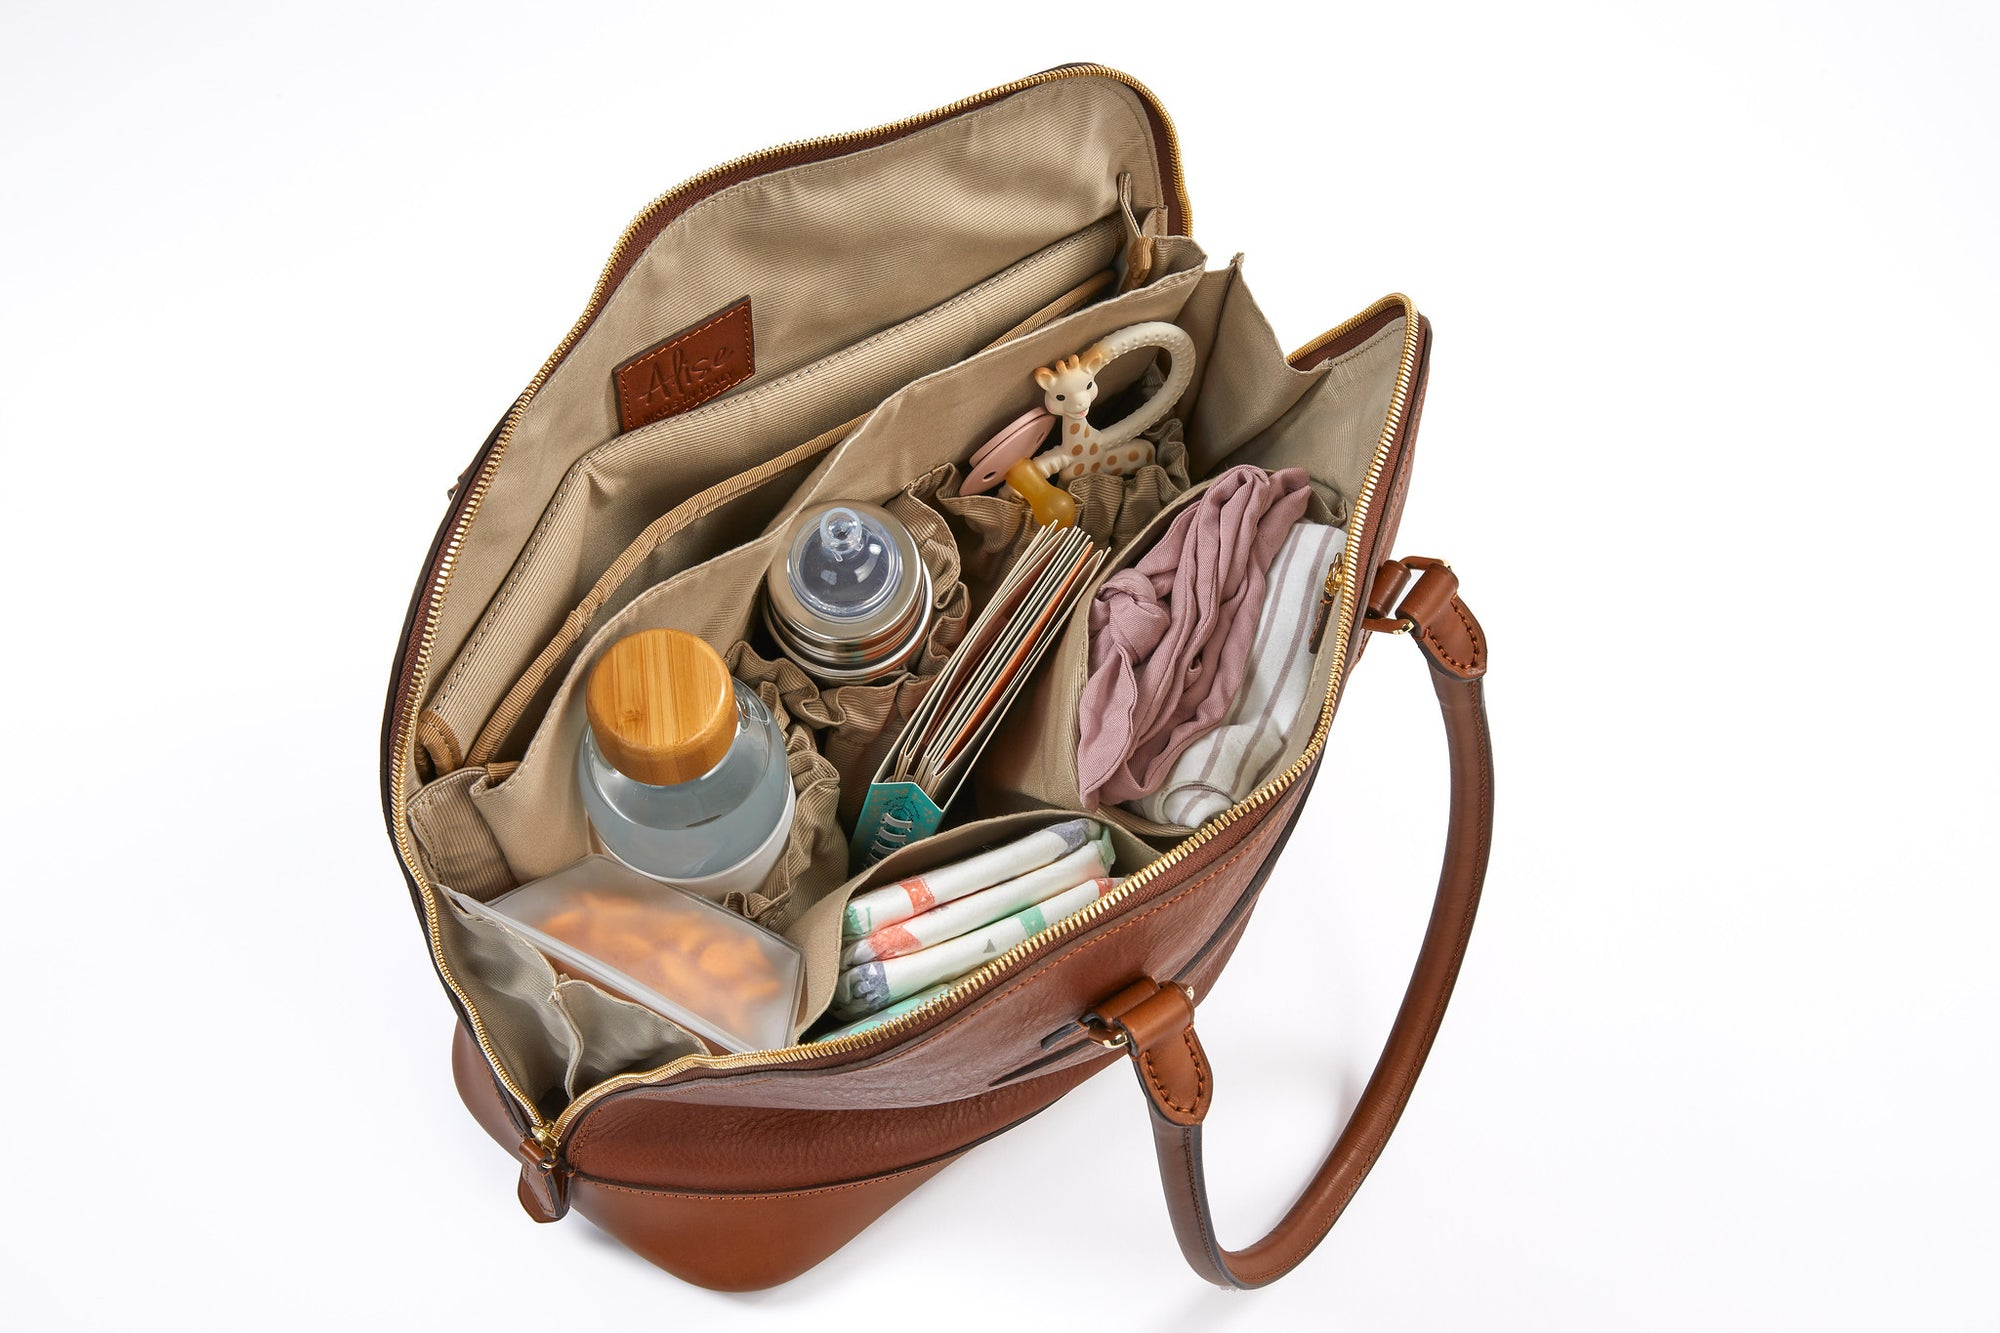 What makes a purse a diaper bag?